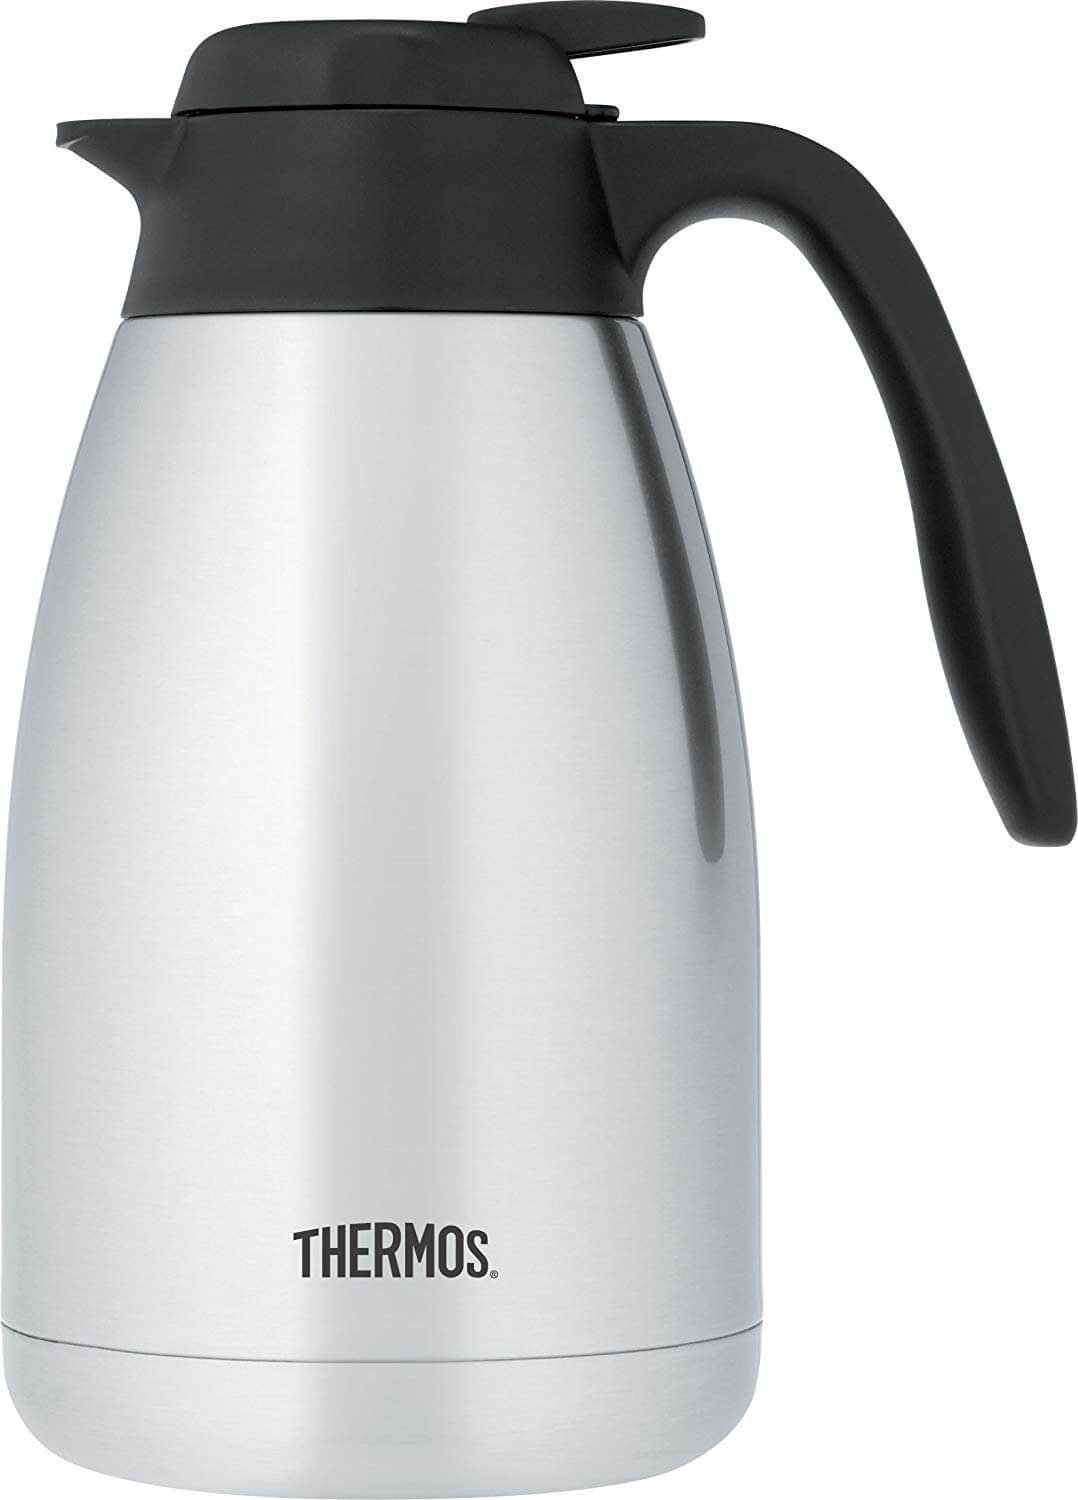 Thermos Vacuum Insulated Stainless Steel Carafe